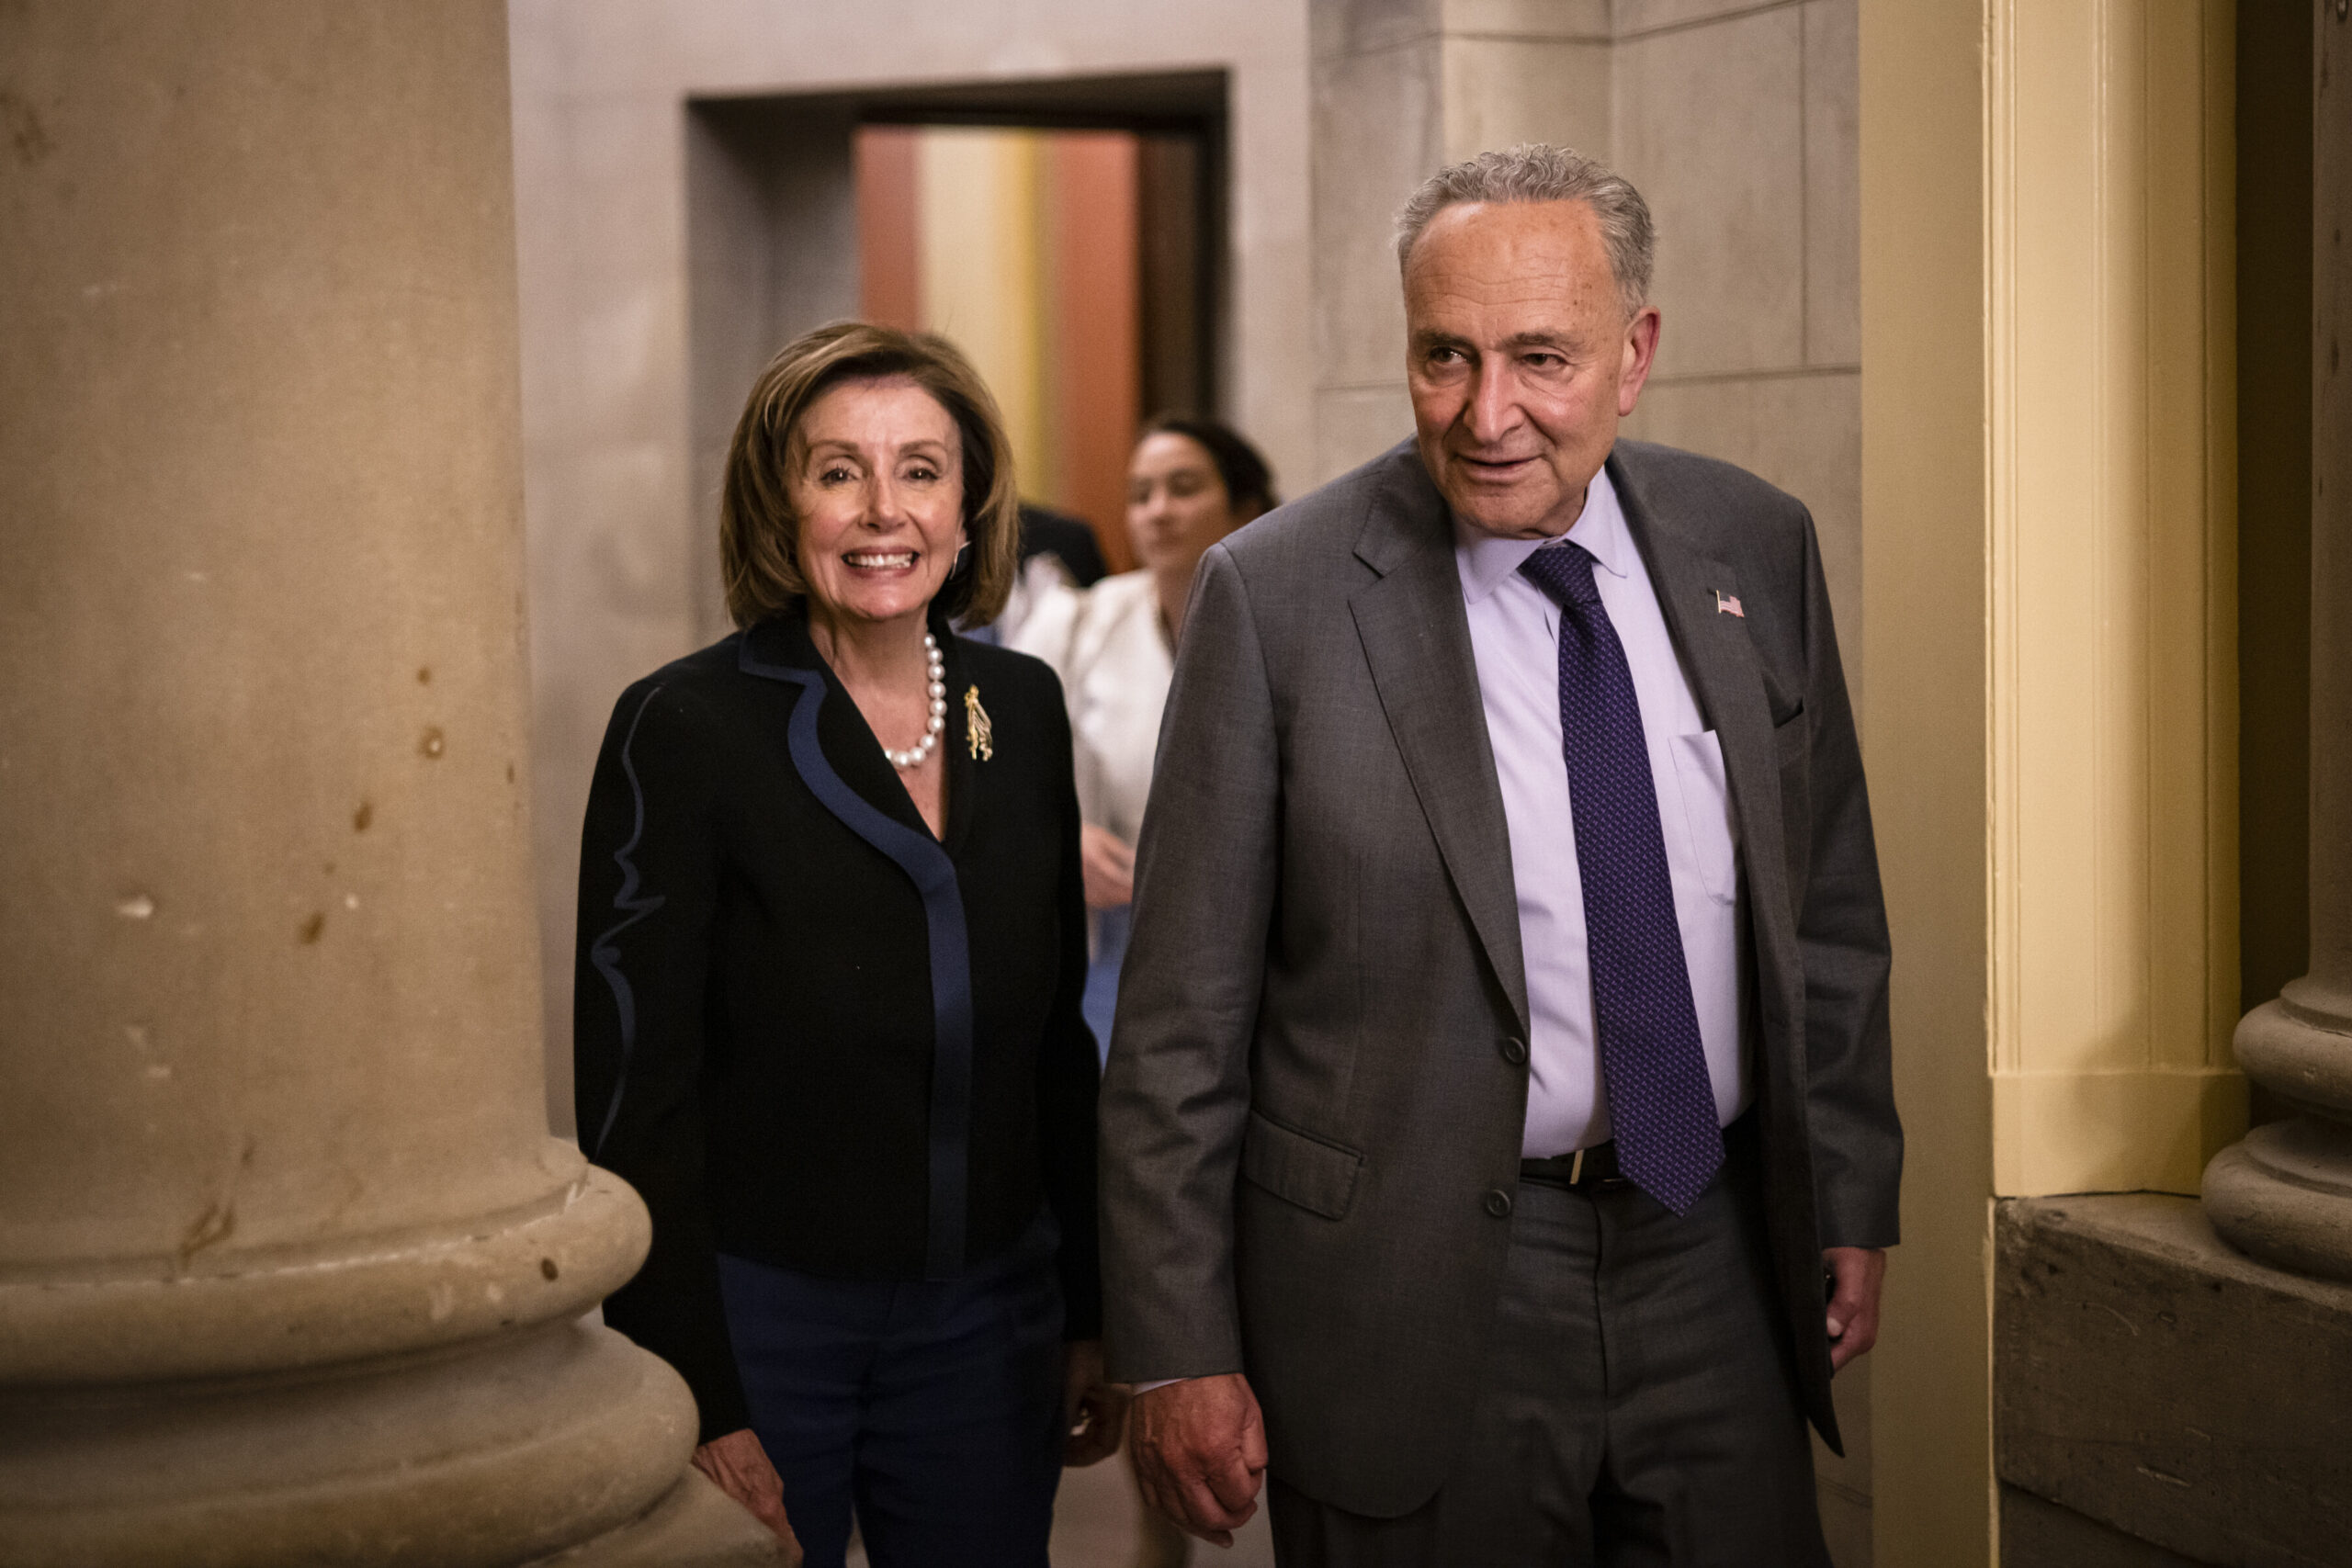 <i>Samuel Corum/Getty Images</i><br/>US Speaker of the House Nancy Pelosi (D-CA) and U.S. Senate Majority Leader Chuck Schumer (D-NY) emerge from the Speakers office after a bipartisan group of Senators and White House officials came to an agreement over the Biden administrations proposed infrastructure plan.